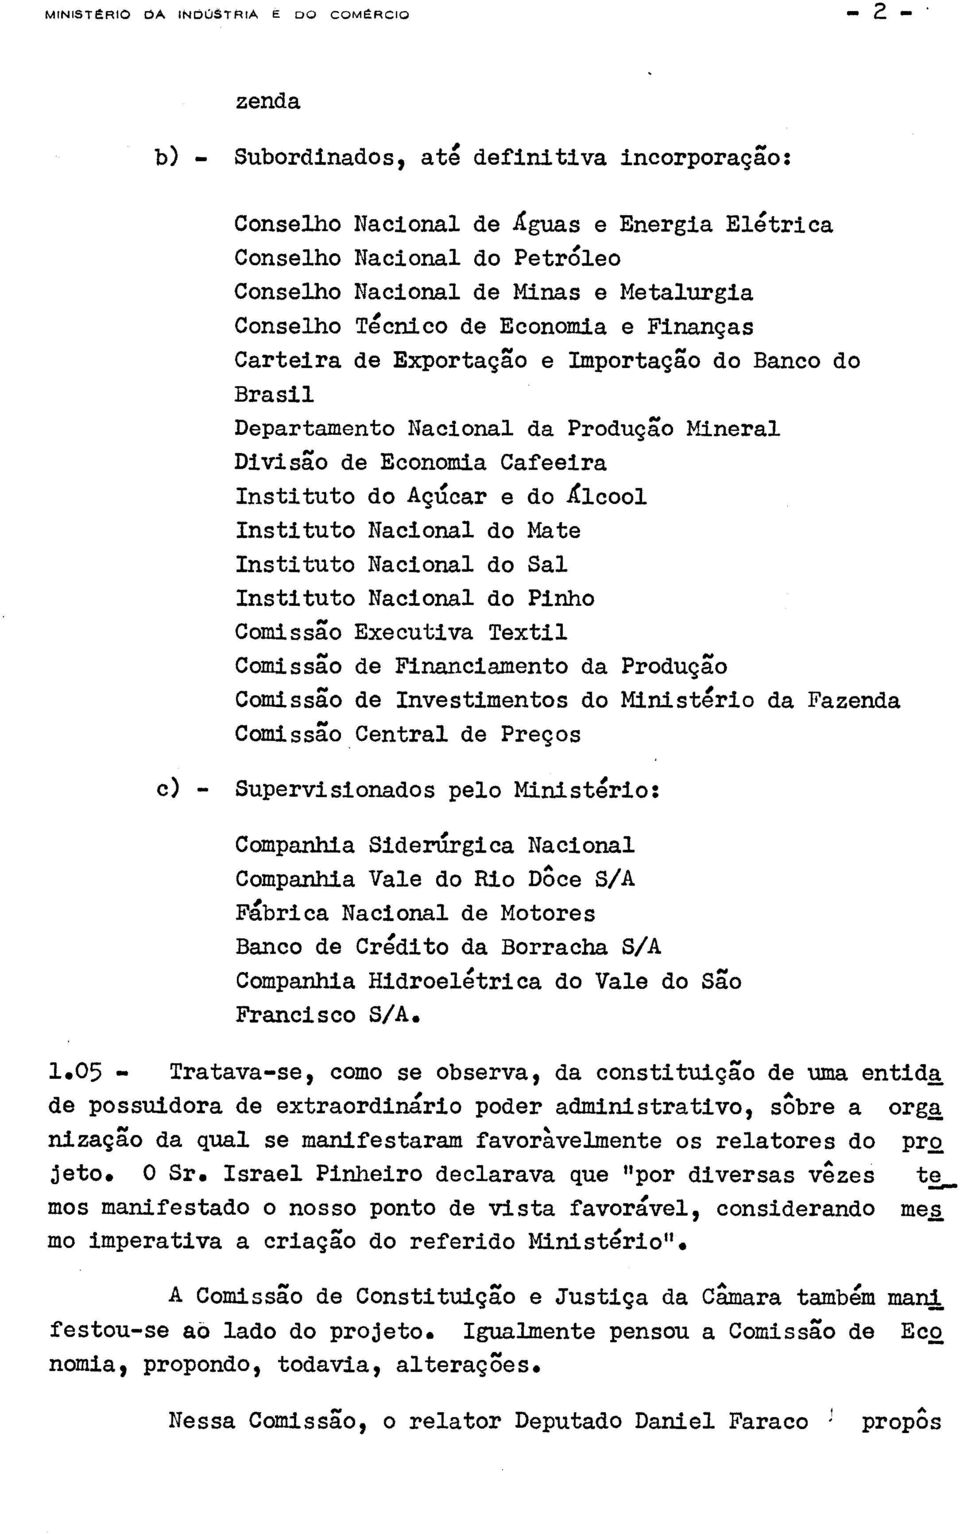 e do Alcool Instituto Nacional do Mate Instituto Nacional do Sal Instituto Nacional do Pinho Comissgo Executiva Textil Comissgo de Financiamento da Produggo Comissgo de Investimentos do Ministerio da